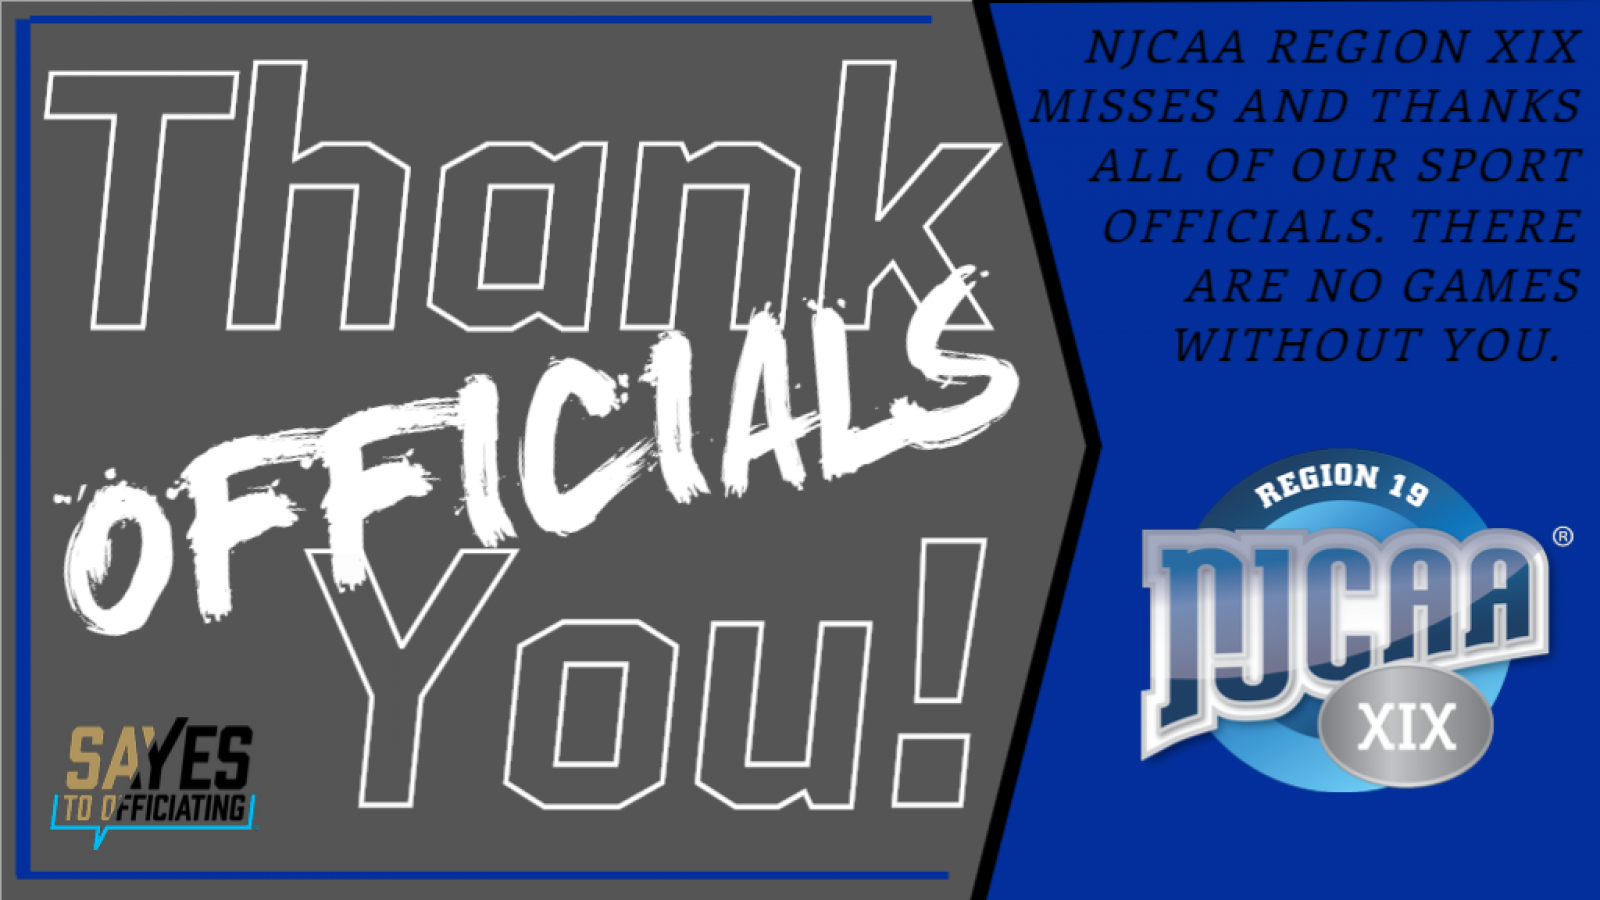 Thank You Officials - NJCAA Region XIX Misses and Thanks All of Our Sports Officials. There are No Games without you.